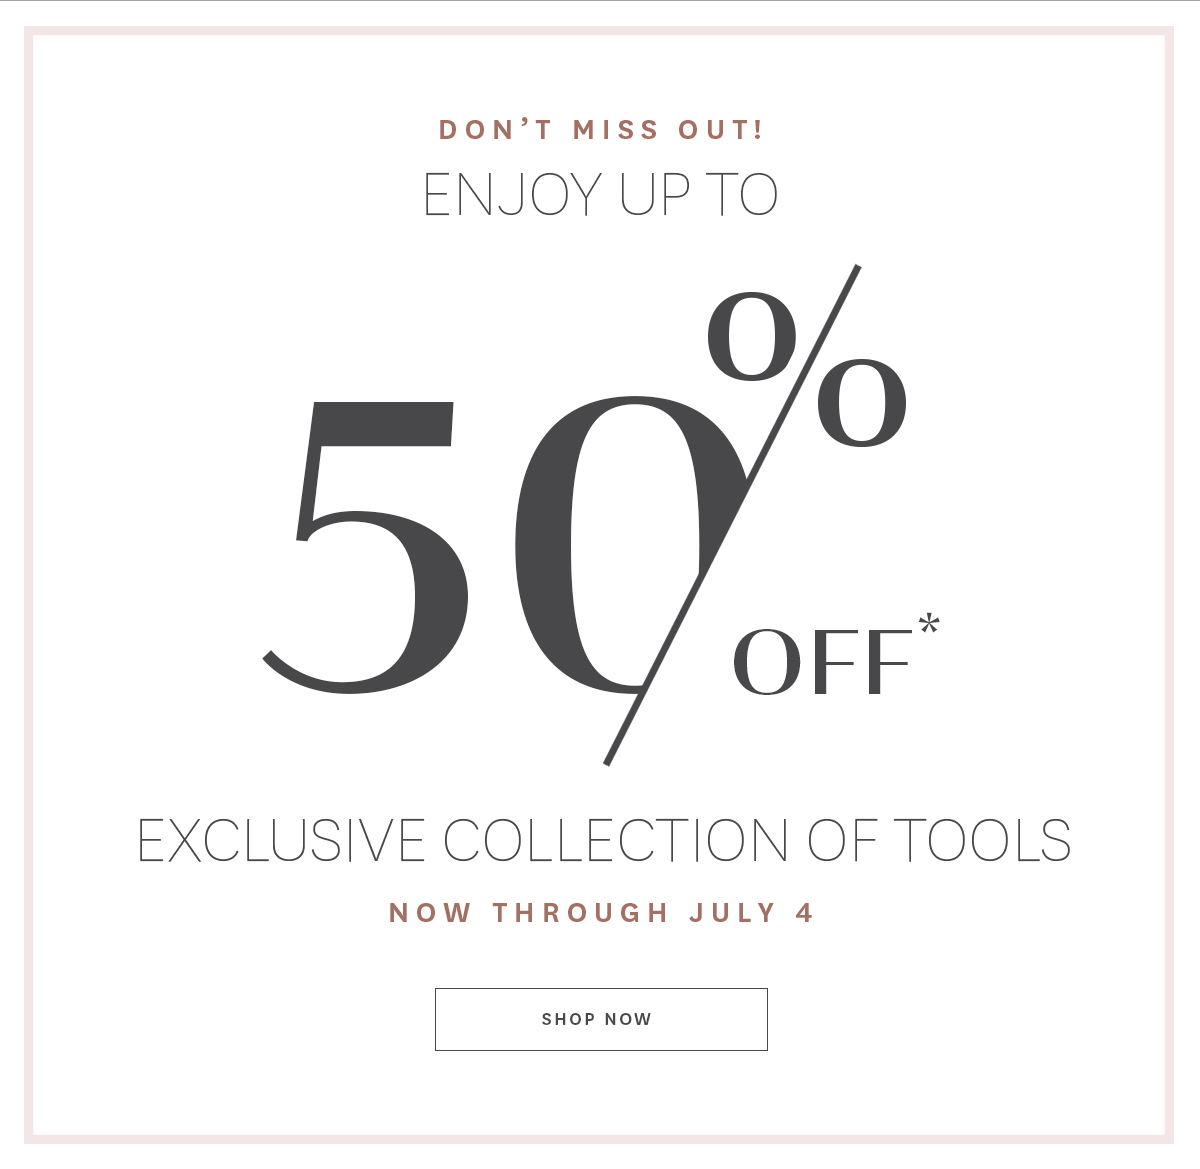 Enjoy up to 50% off an exclusive collection of tools.